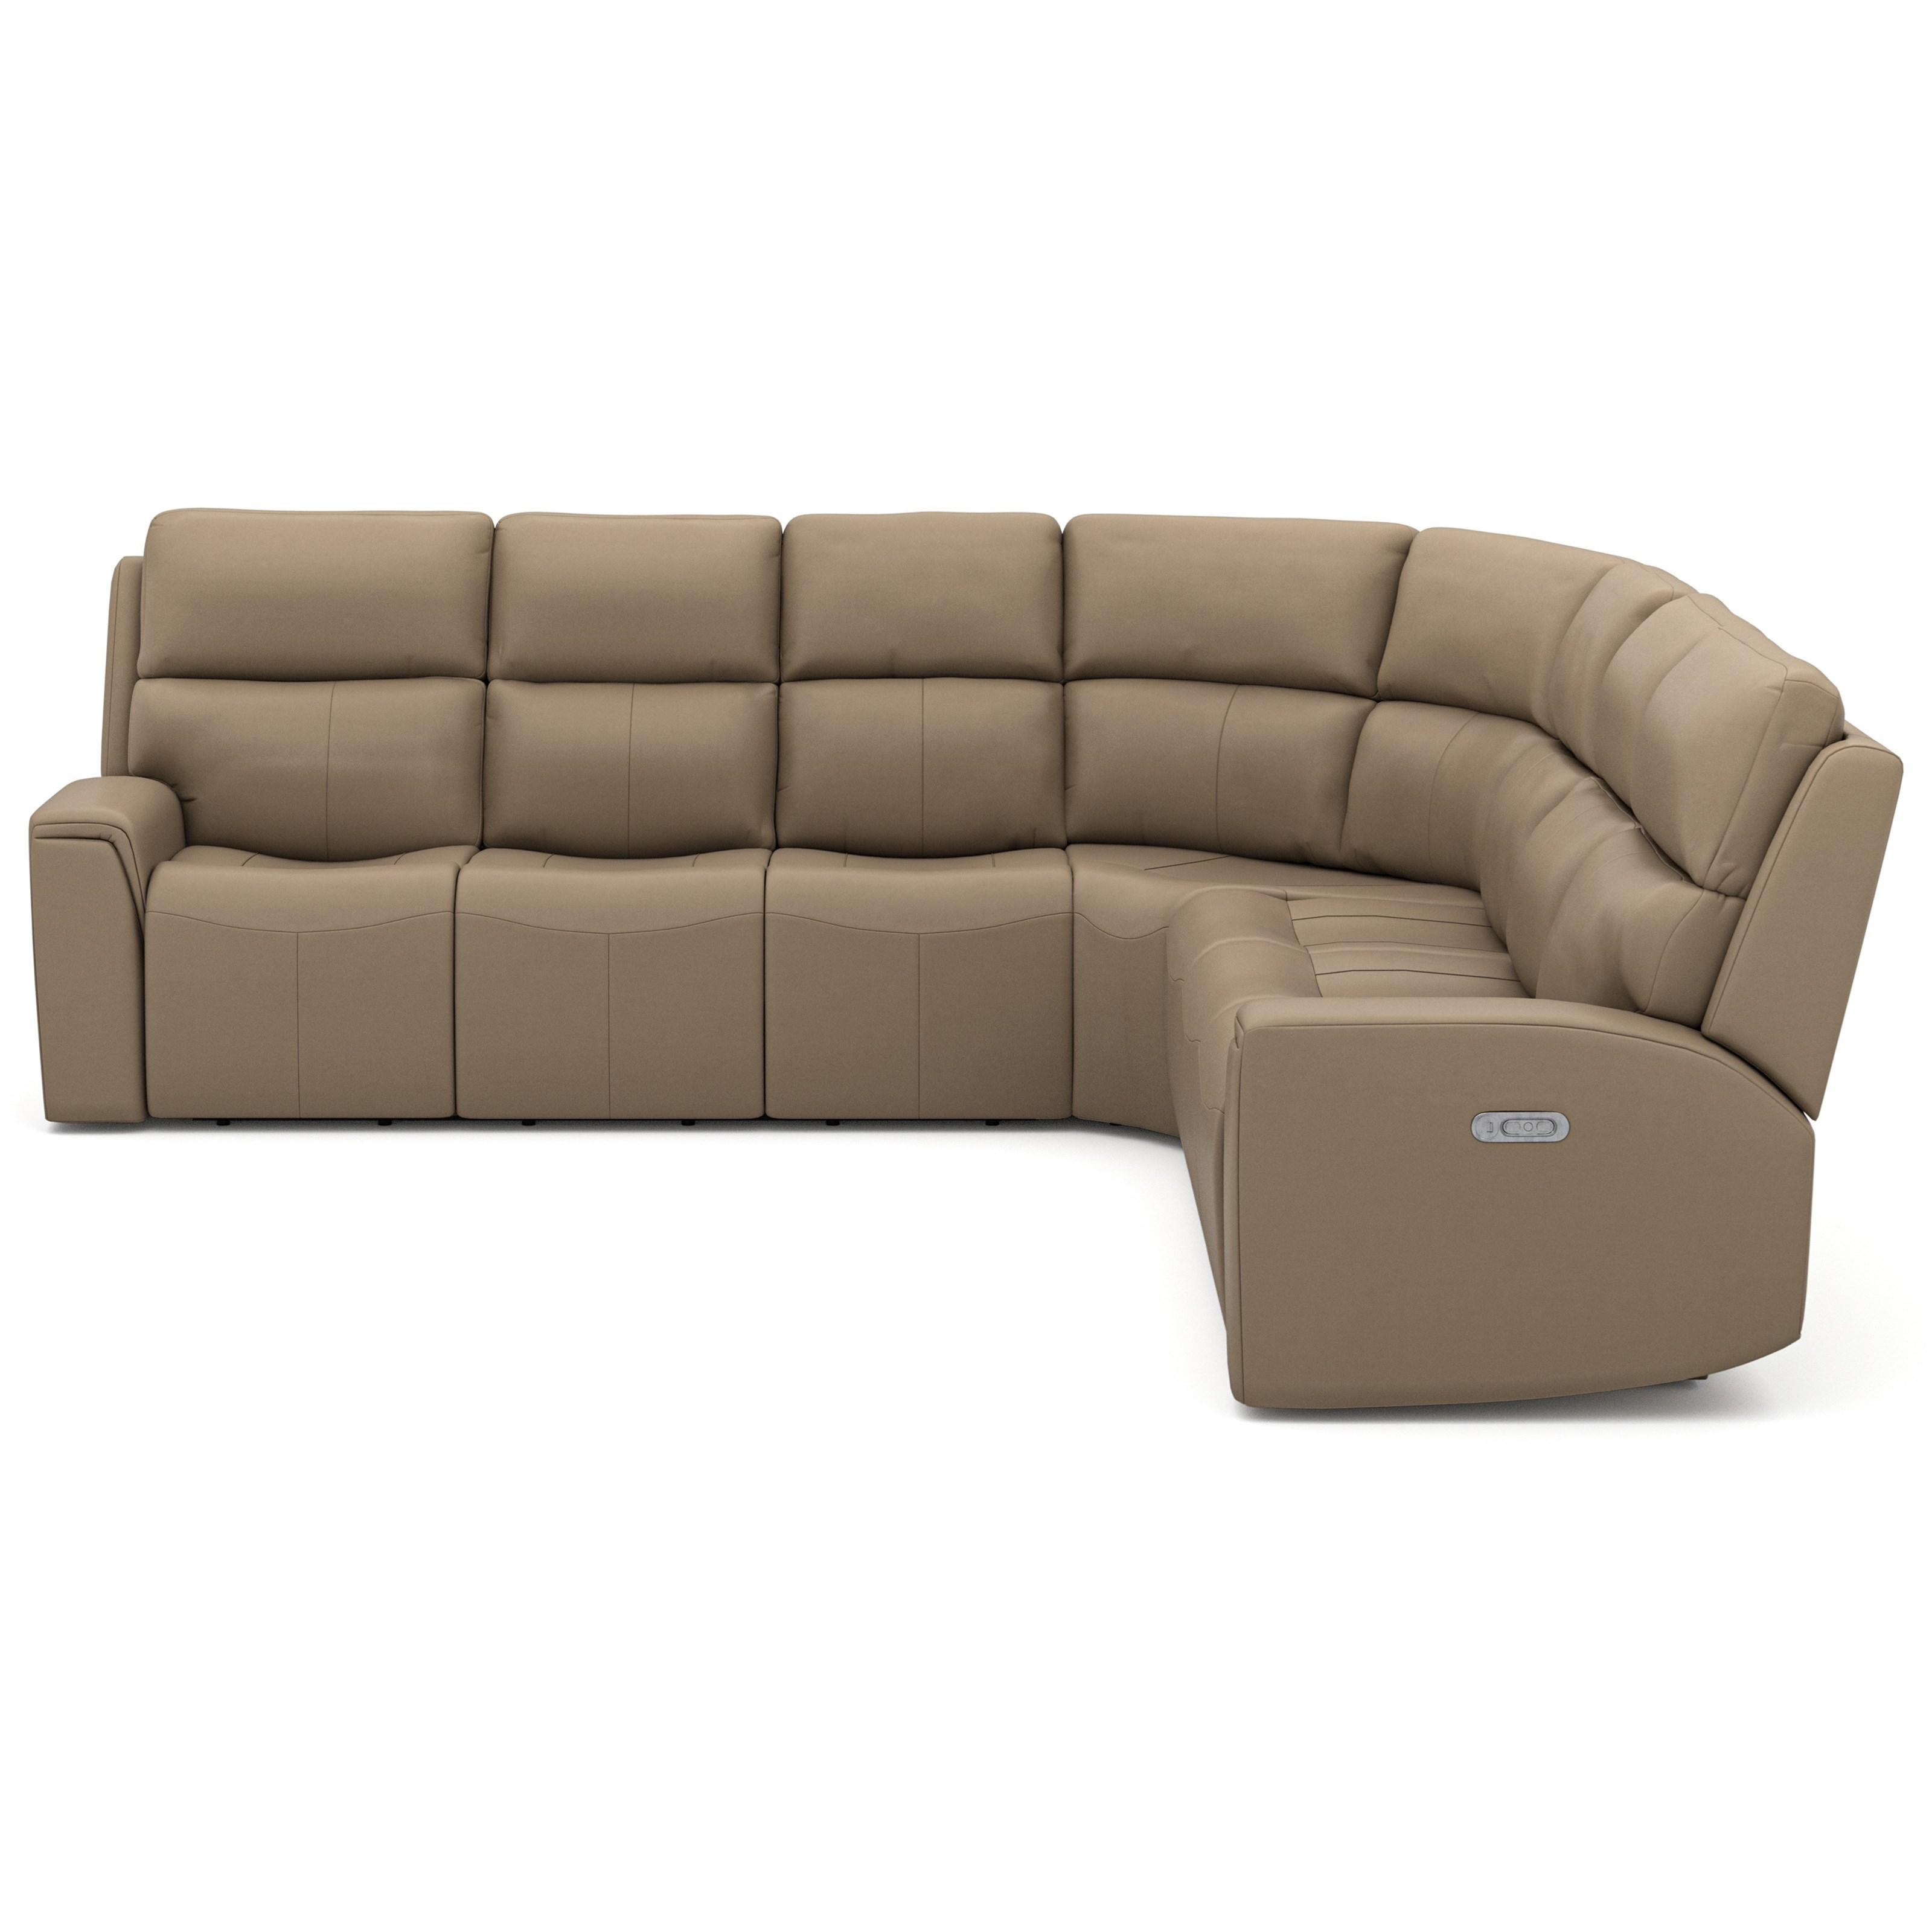 Latitudes - Jarvis Sectional Sofa by Flexsteel at Walker's Furniture